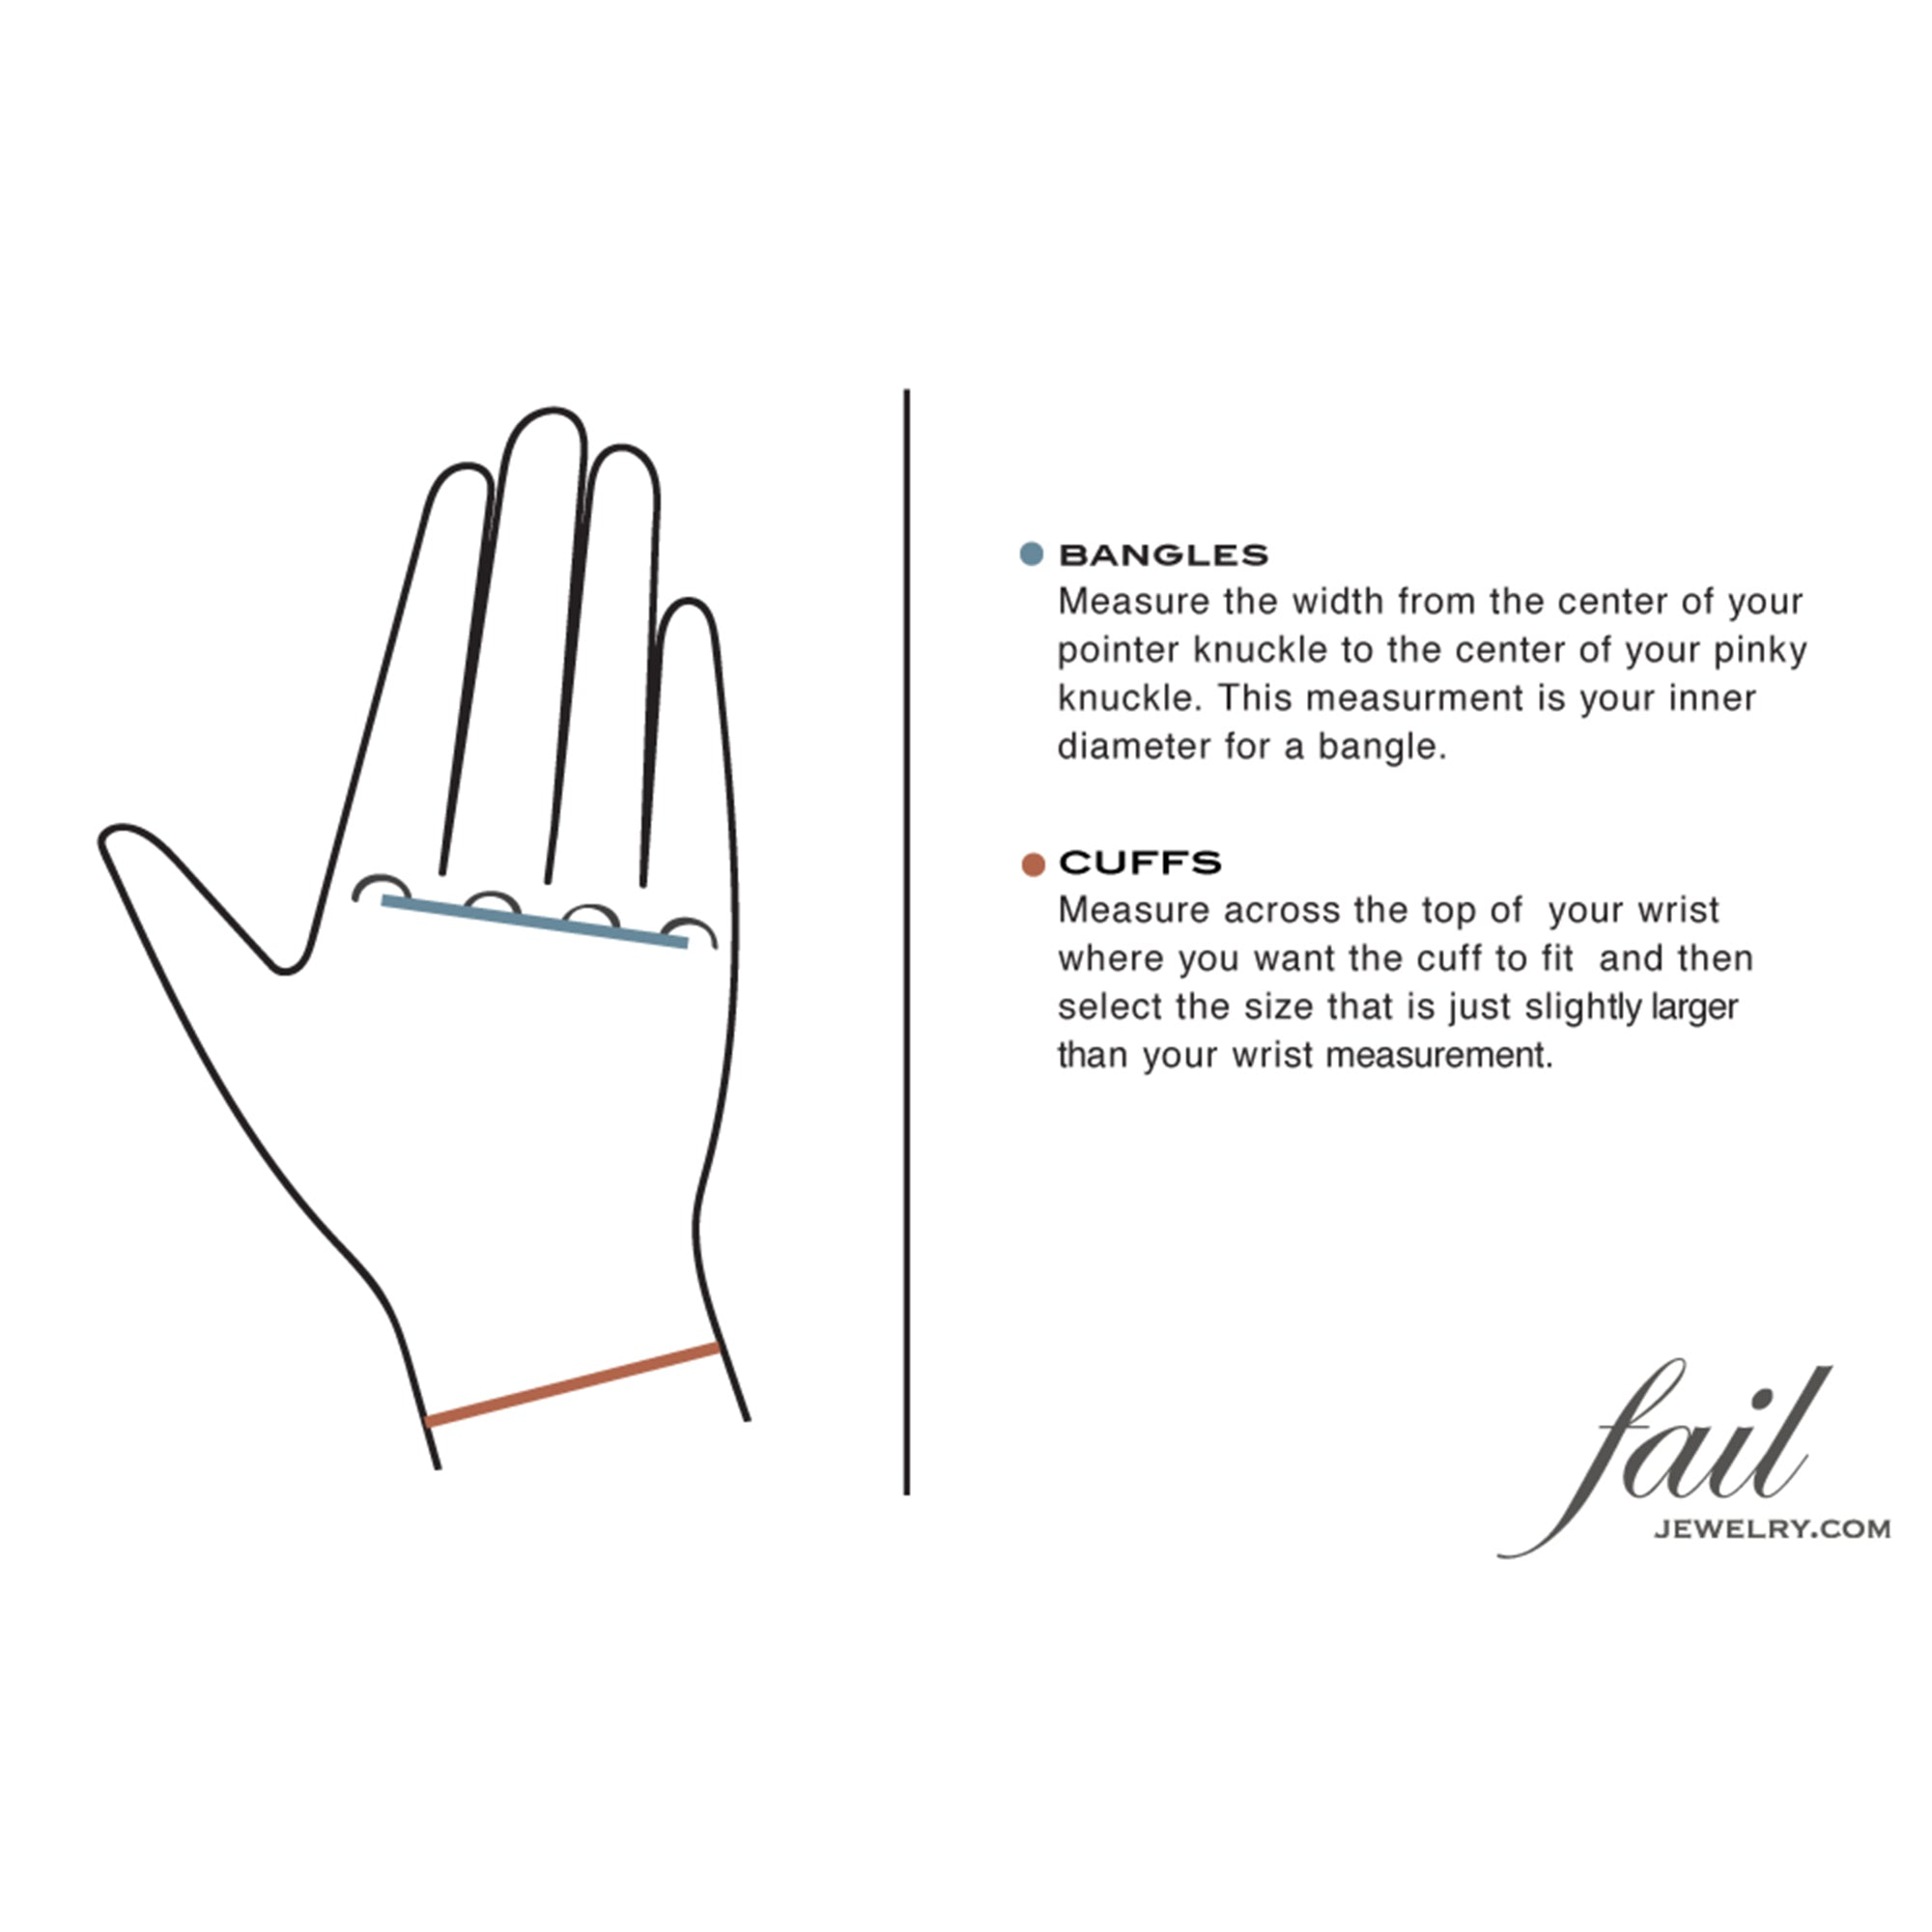 Joan cuff | bracelet sizing diagram | #failjewelry